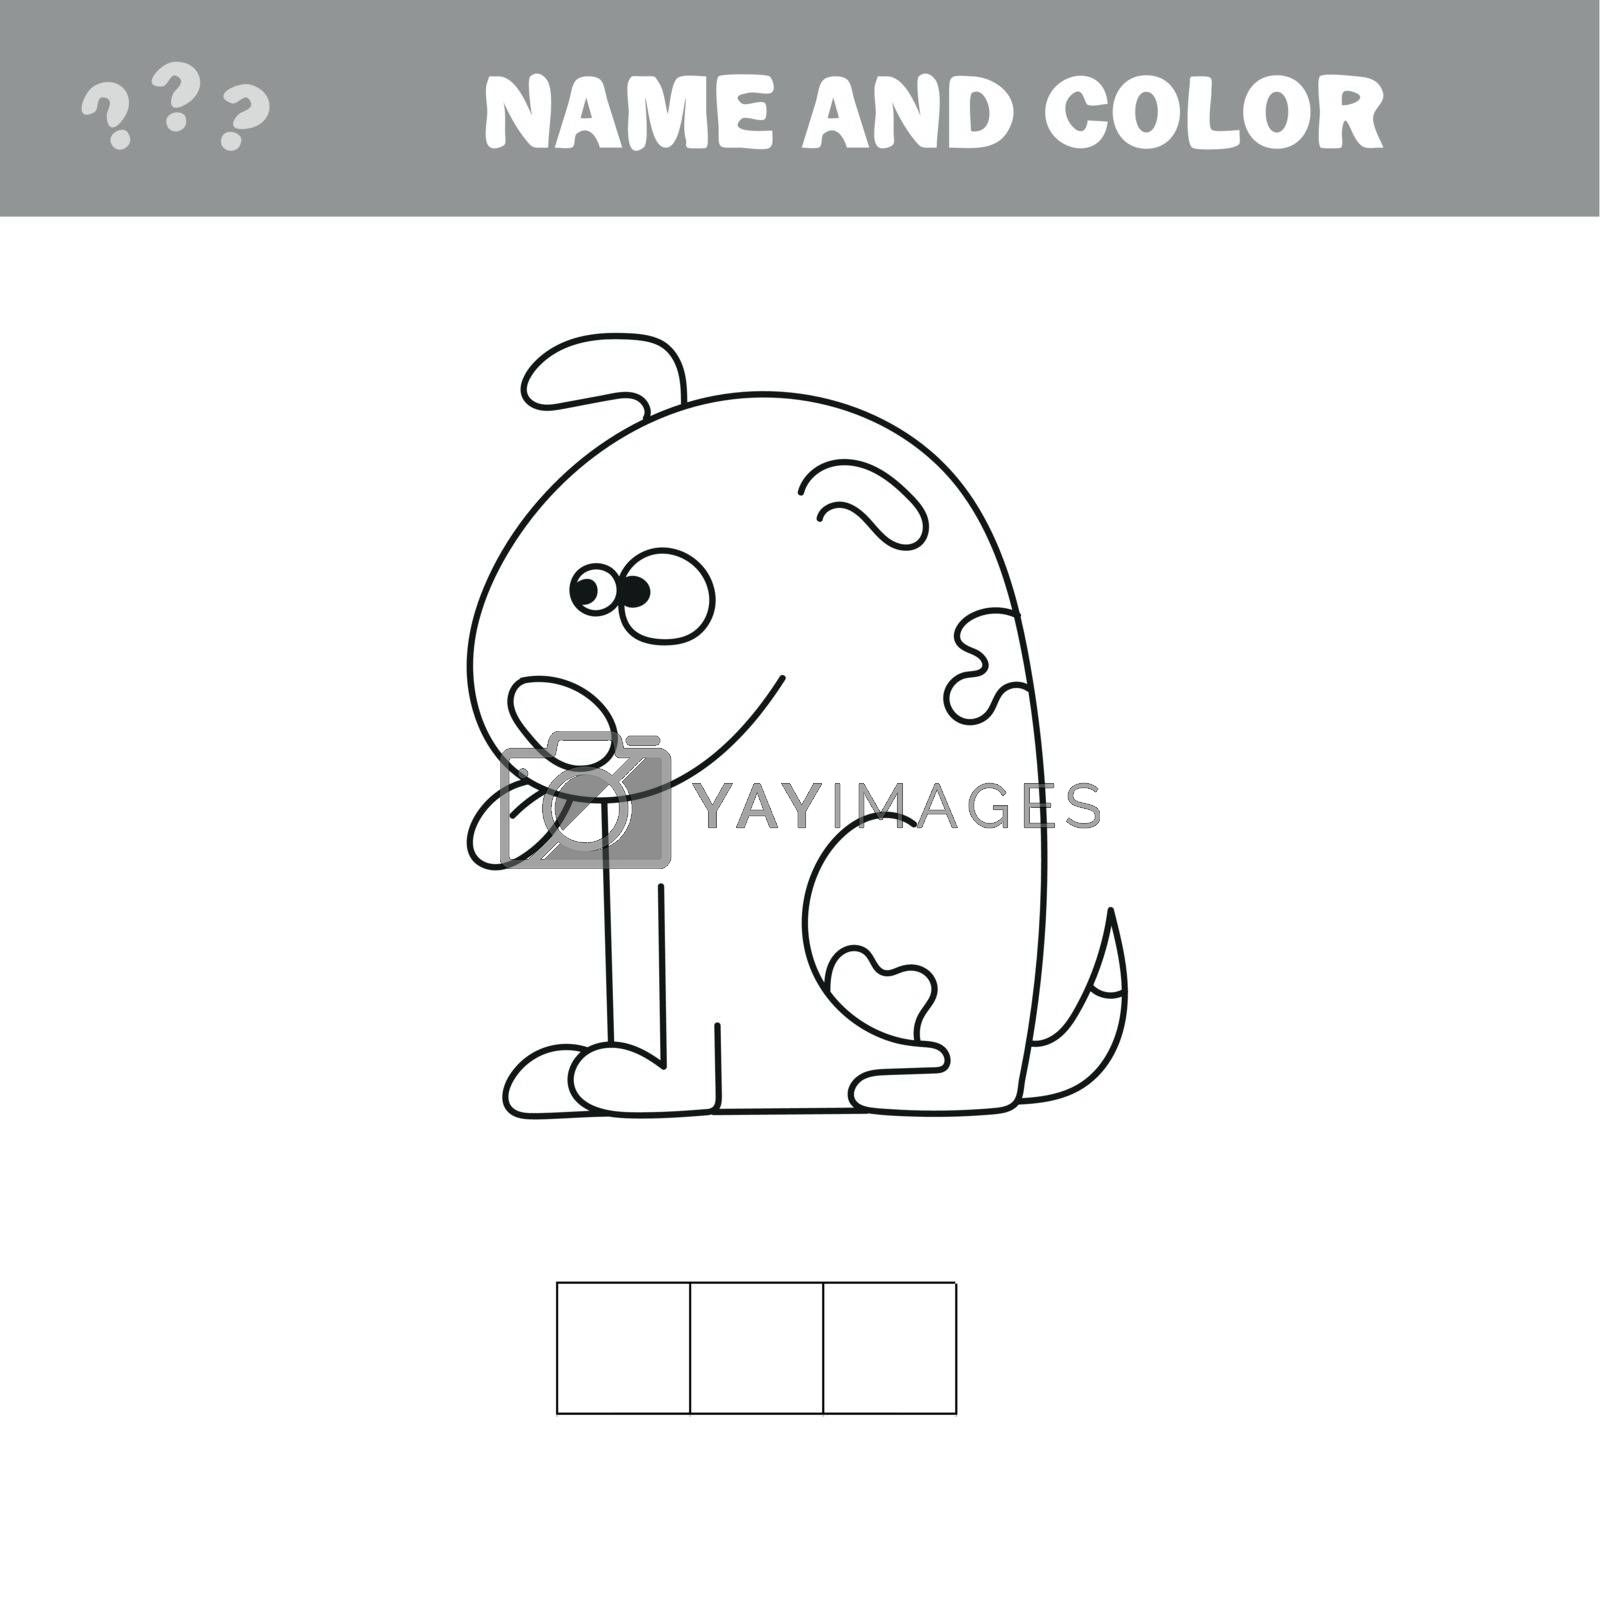 Royalty free image of Coloring page for kids. Dog Vector illustration. by natali_brill